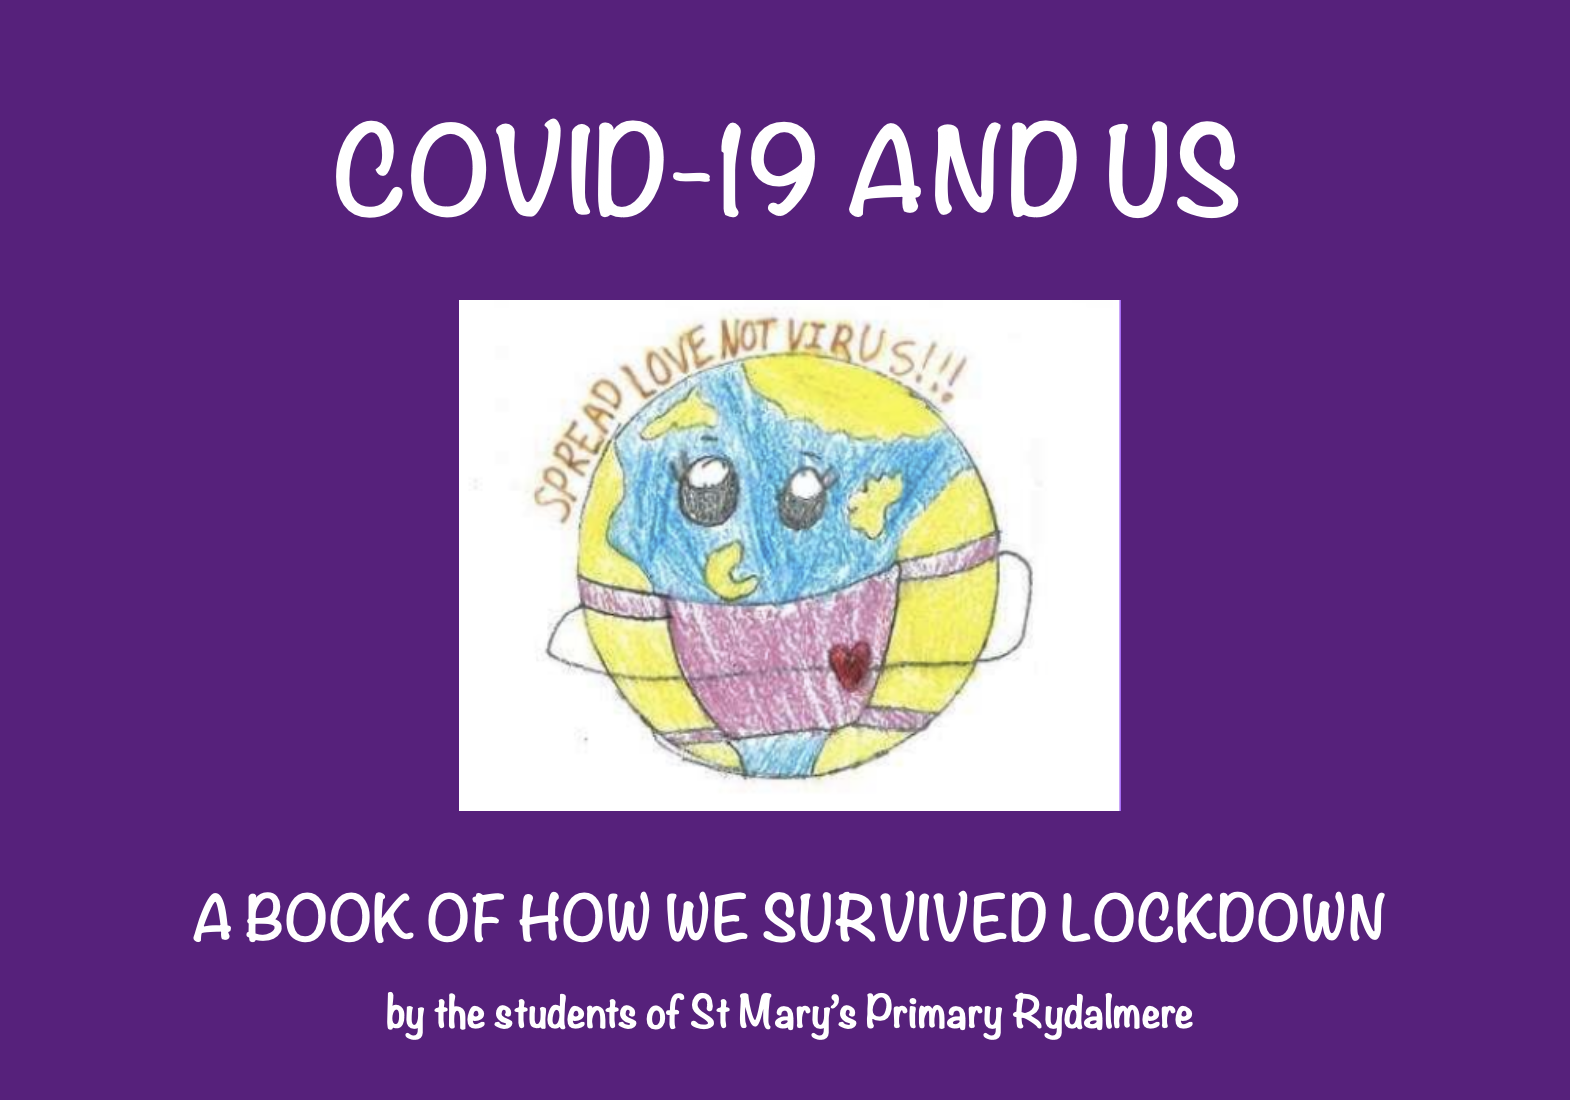 COVID-19 And Us book cover image